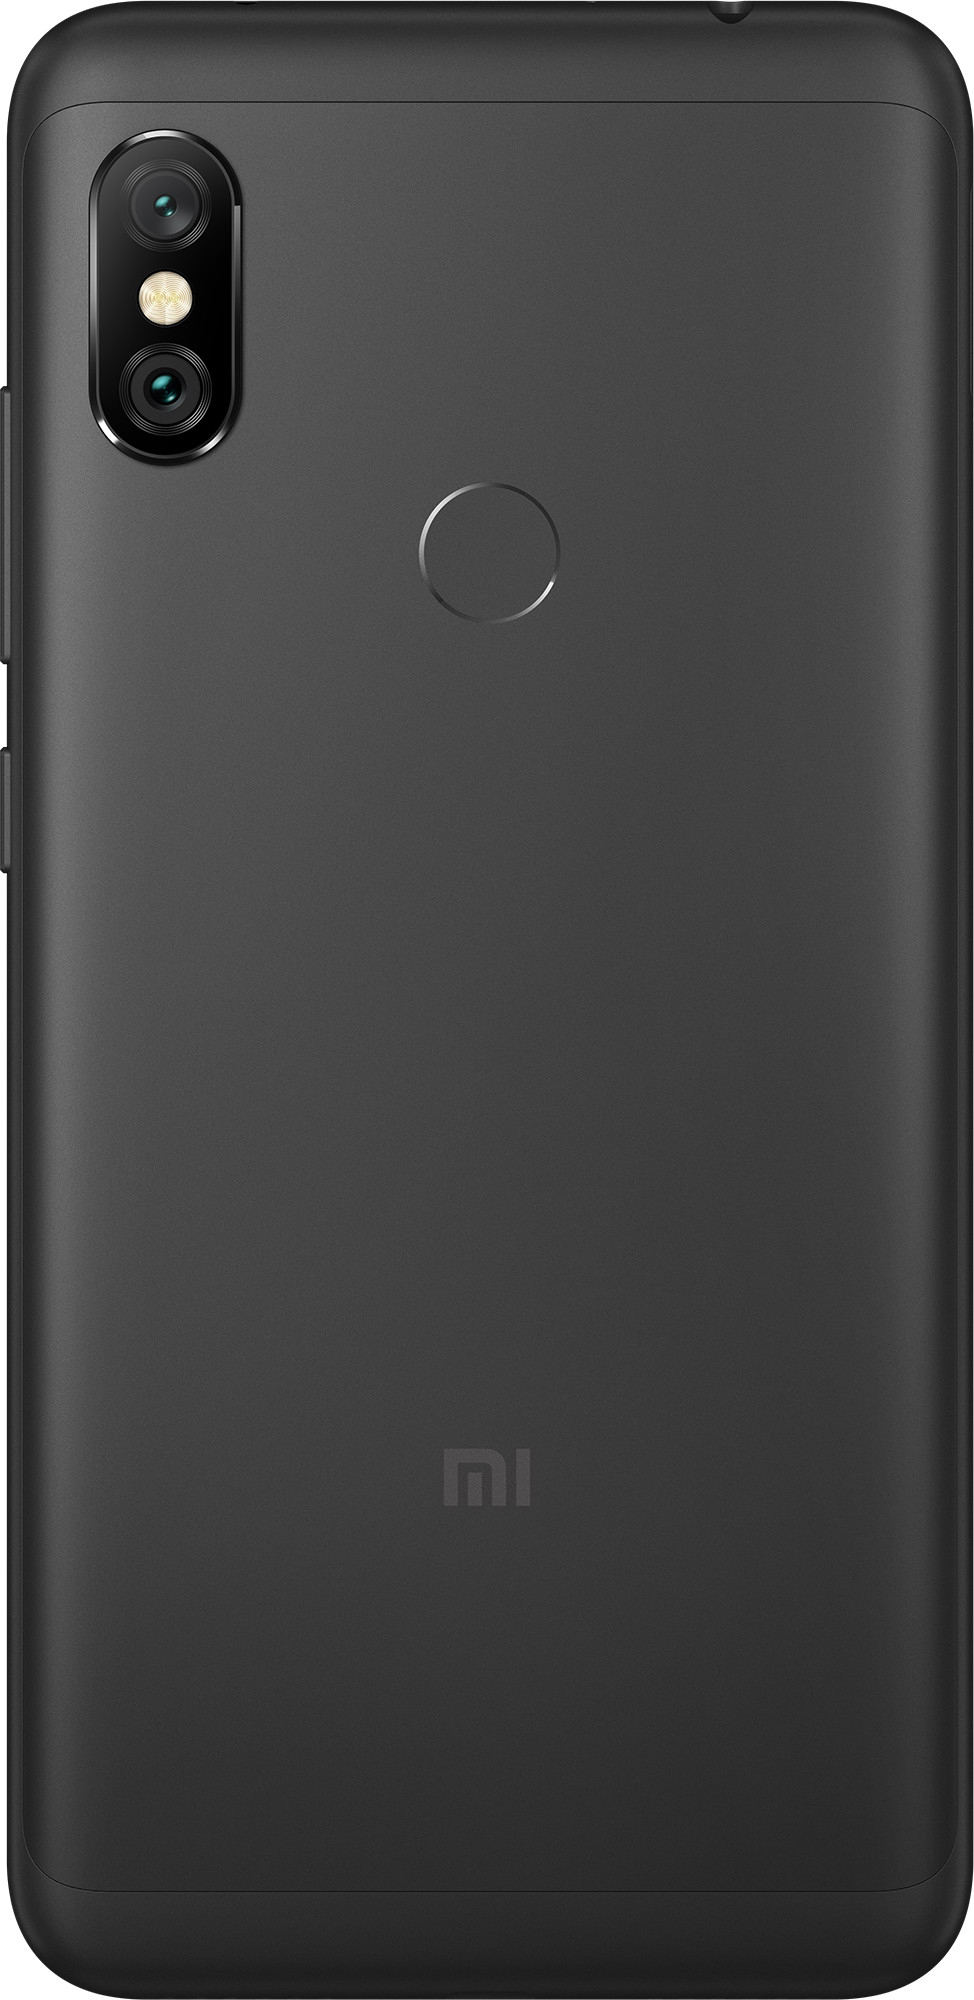 Rozetkaua Xiaomi Redmi Note 6 Pro 3 32gb Black Gold